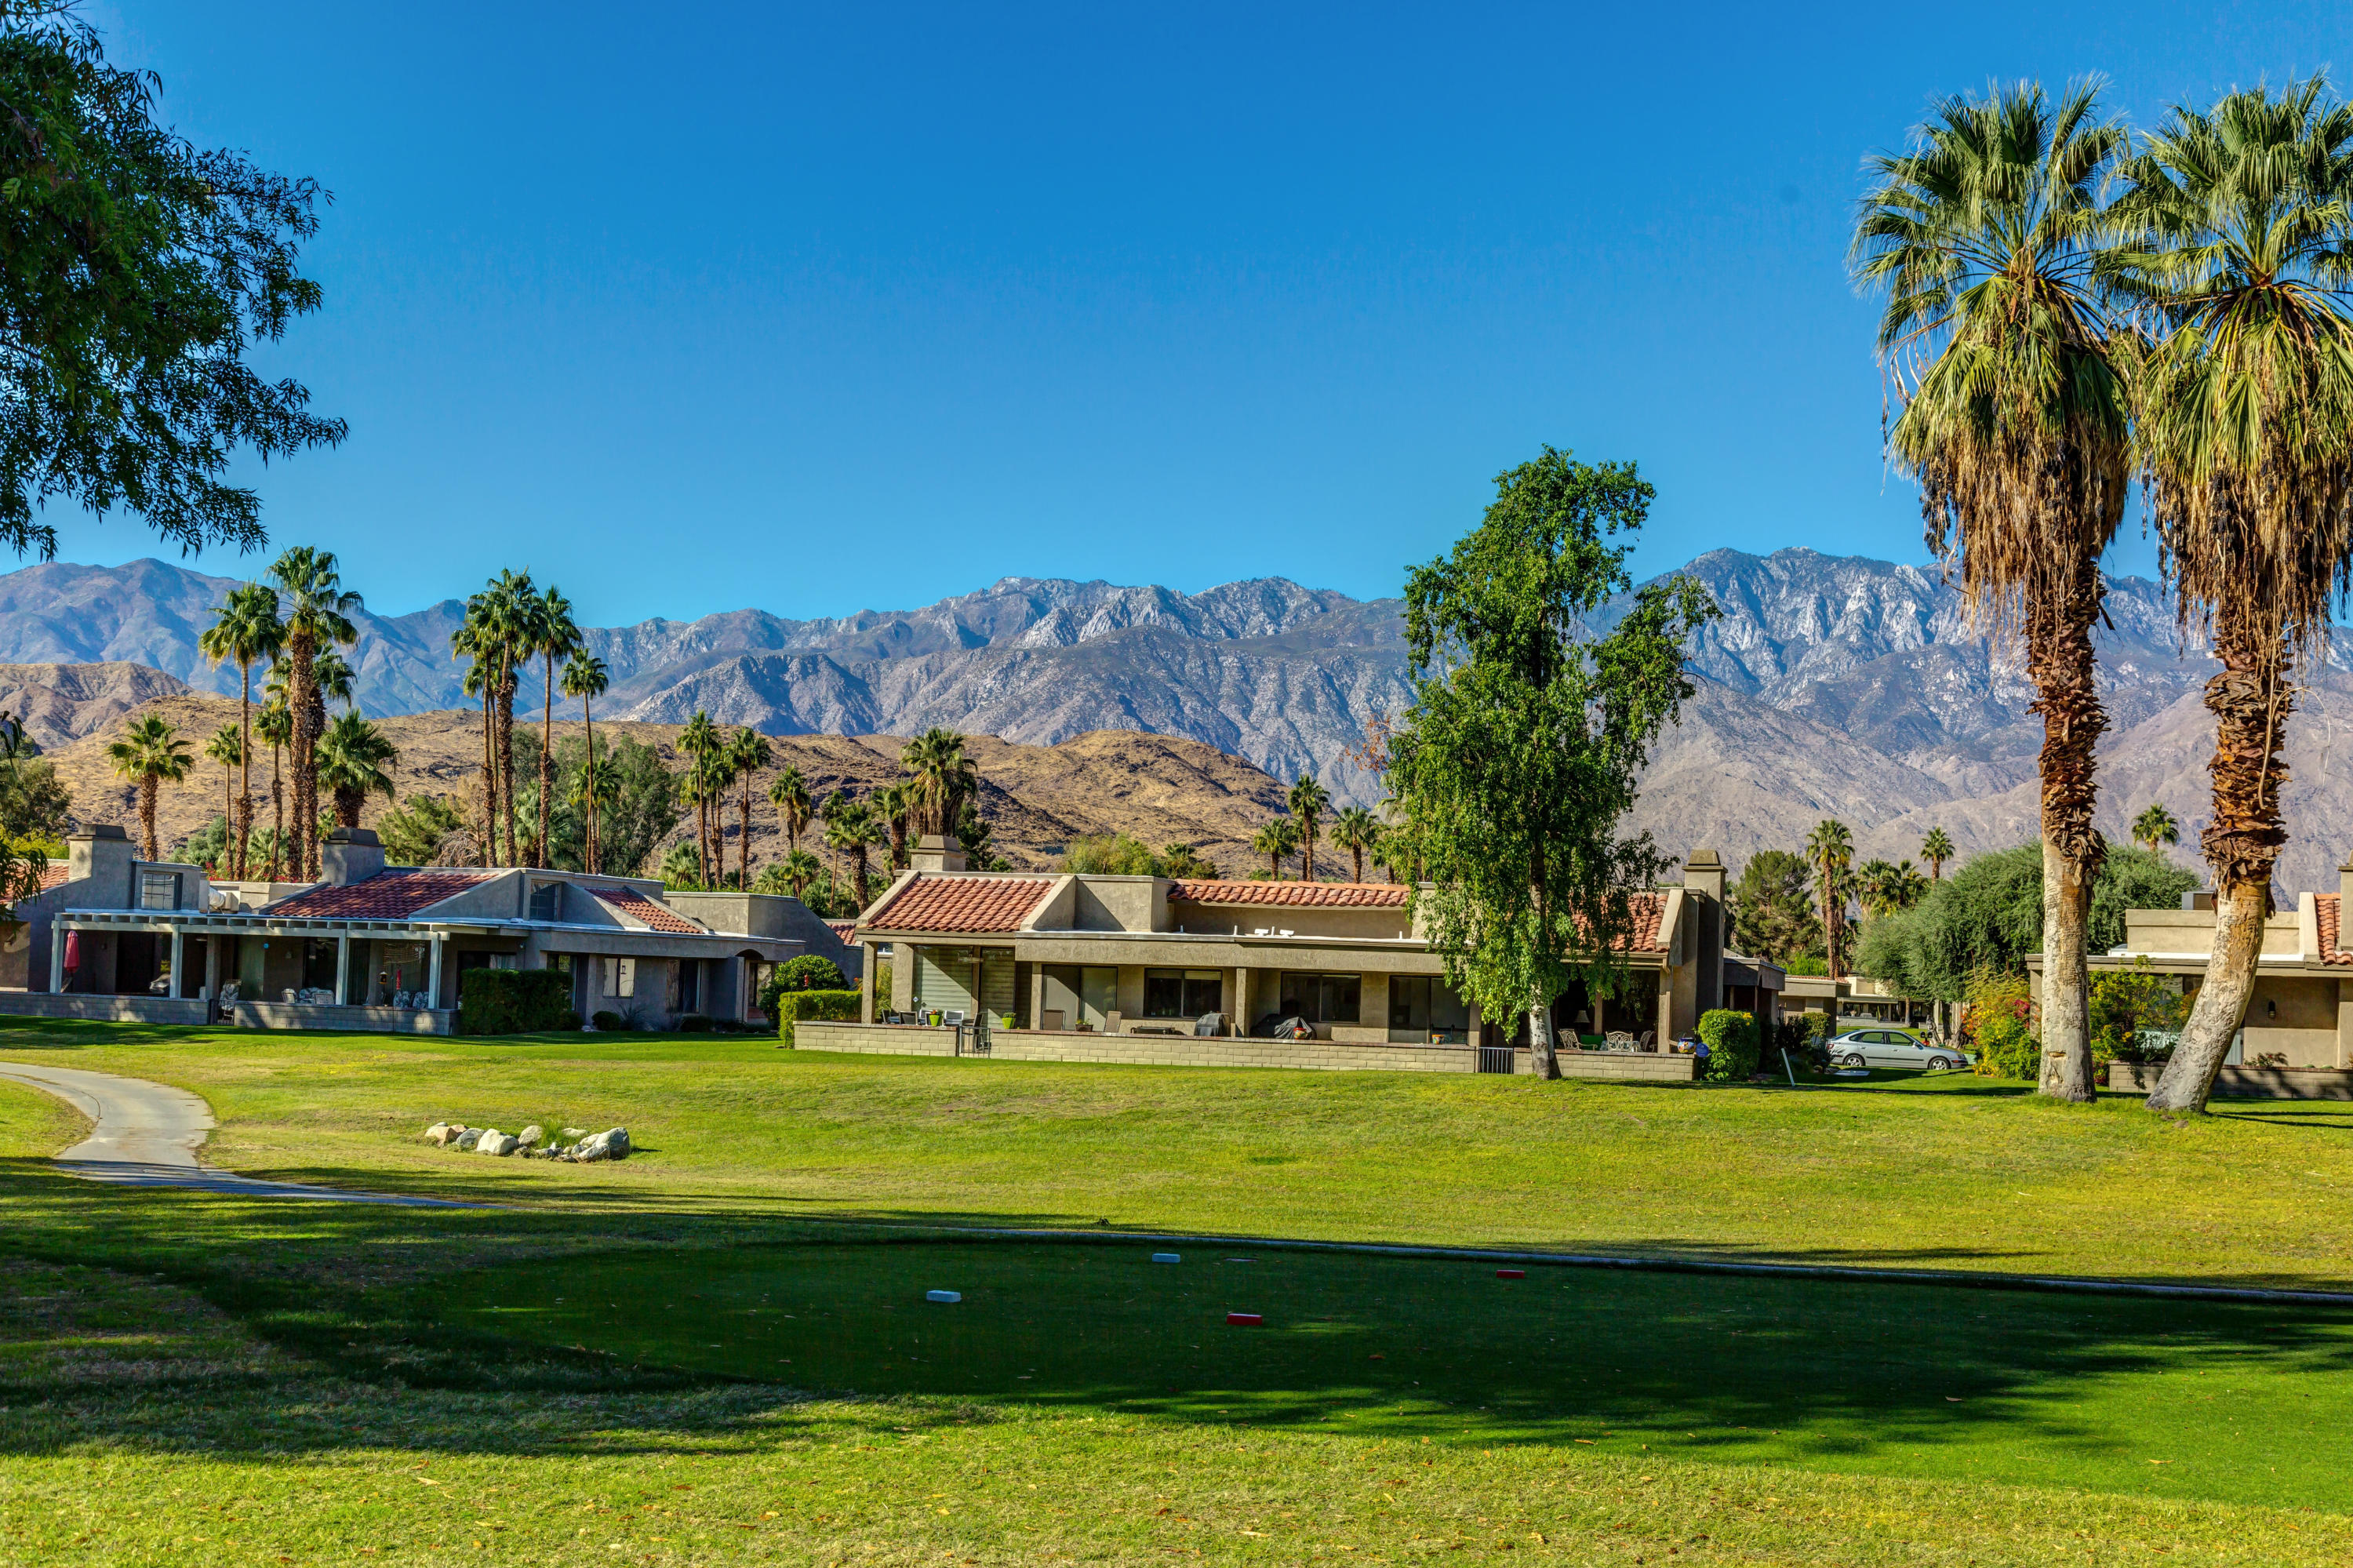 Views! Views! Views! Check out this 3-bedroom, 2-bathroom Golf Course Condo located inside Cathedral Canyon Country Club featuring an open floor plan, spacious bedrooms and majestic views of the fairway and surrounding mountain ranges.  This home features a light and bright living room with vaulted ceilings, clerestory windows, a mini wet-bar and fireplace with direct access to the private enclosed patio.  Formal Dining Area is just steps away from the kitchen and breakfast nook with direct access to the private patio and golf course views.  Master Bedroom features a large glass slider with West mountain views, mirrored glass sliders and en-suite master bathroom with dual sinks and stand up shower stall.  Bedroom 2 also has direct access to a private patio with an adjacent bathroom featuring shower and tub combo with dual sinks.  Bedroom 3 has large mirrored closet doors with easy access to the 2nd bathroom.  This beautiful Condo offers an added bonus space upon entry, indoor laundry room and direct access to the 2-car garage. Amenities at this community include a Public Golf Course, 10 Championship Tennis courts and Club House with Restaurant. Cathedral Canyon Country Club is centrally located to the Airport, Downtown Palm Springs Restaurants and world class Shopping, as well as Casinos and Entertainment.